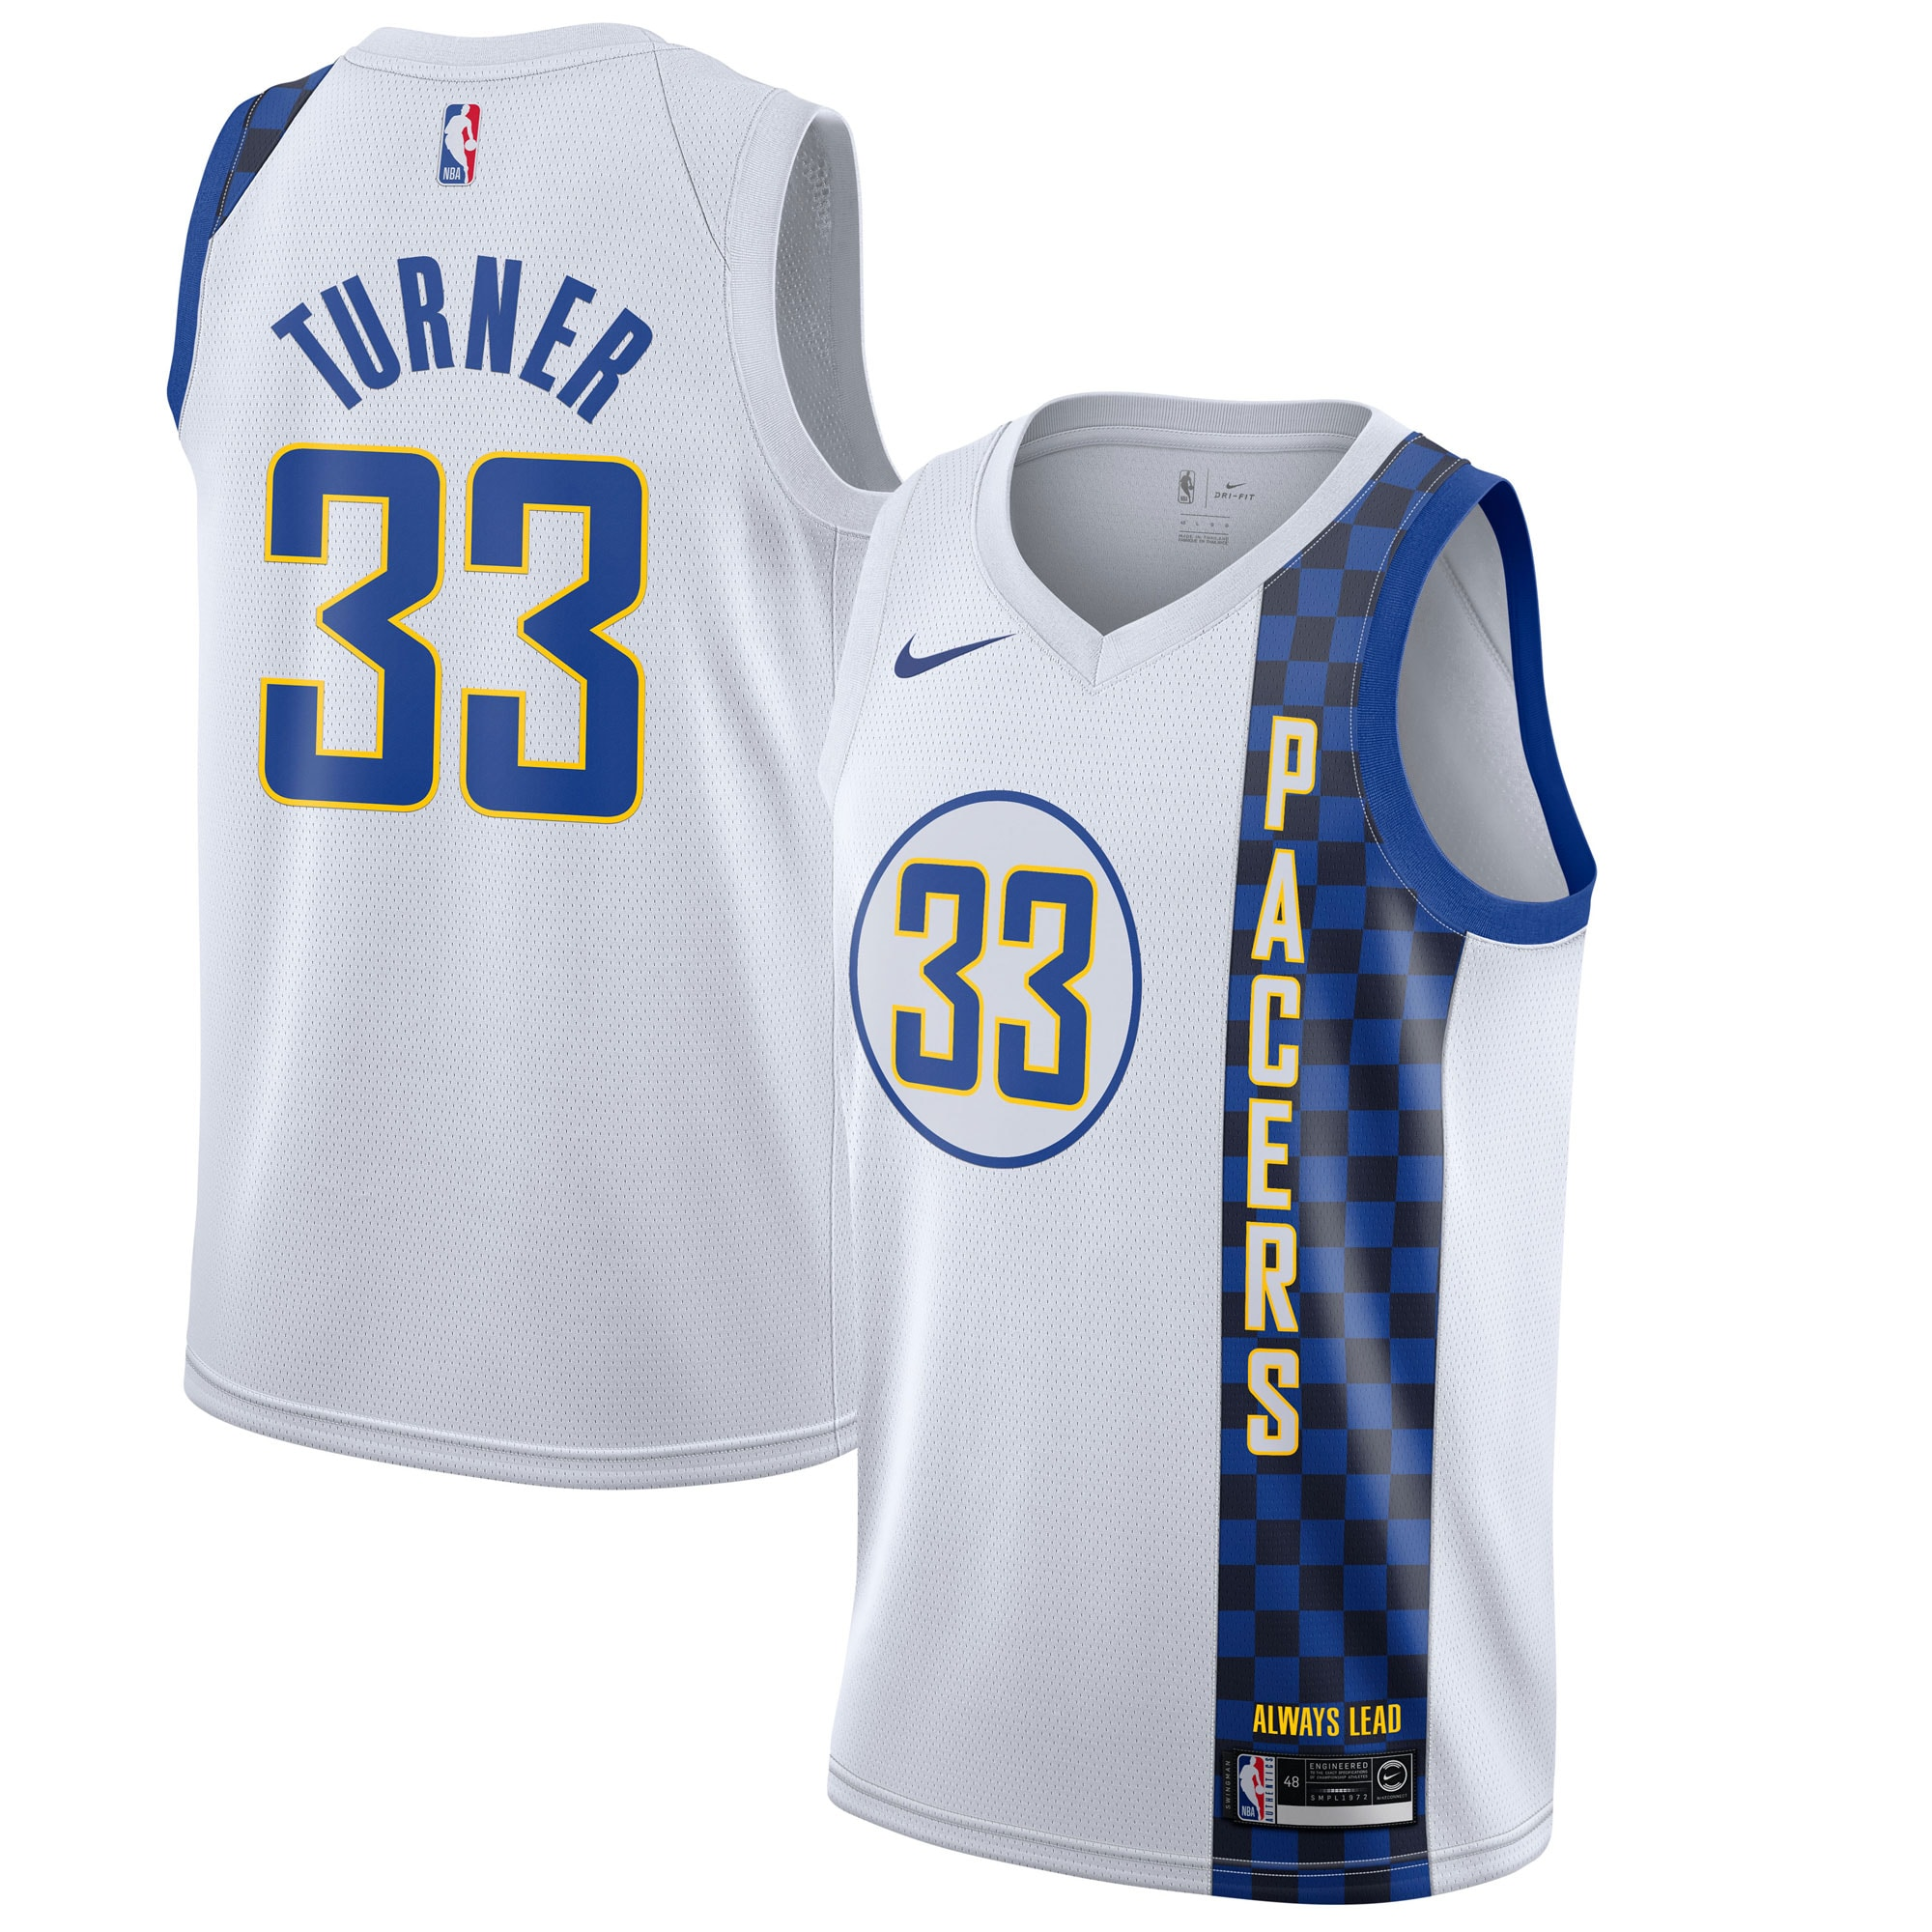 Myles Turner Indiana Pacers Nike 2019/20 Finished Swingman Jersey White - City Edition